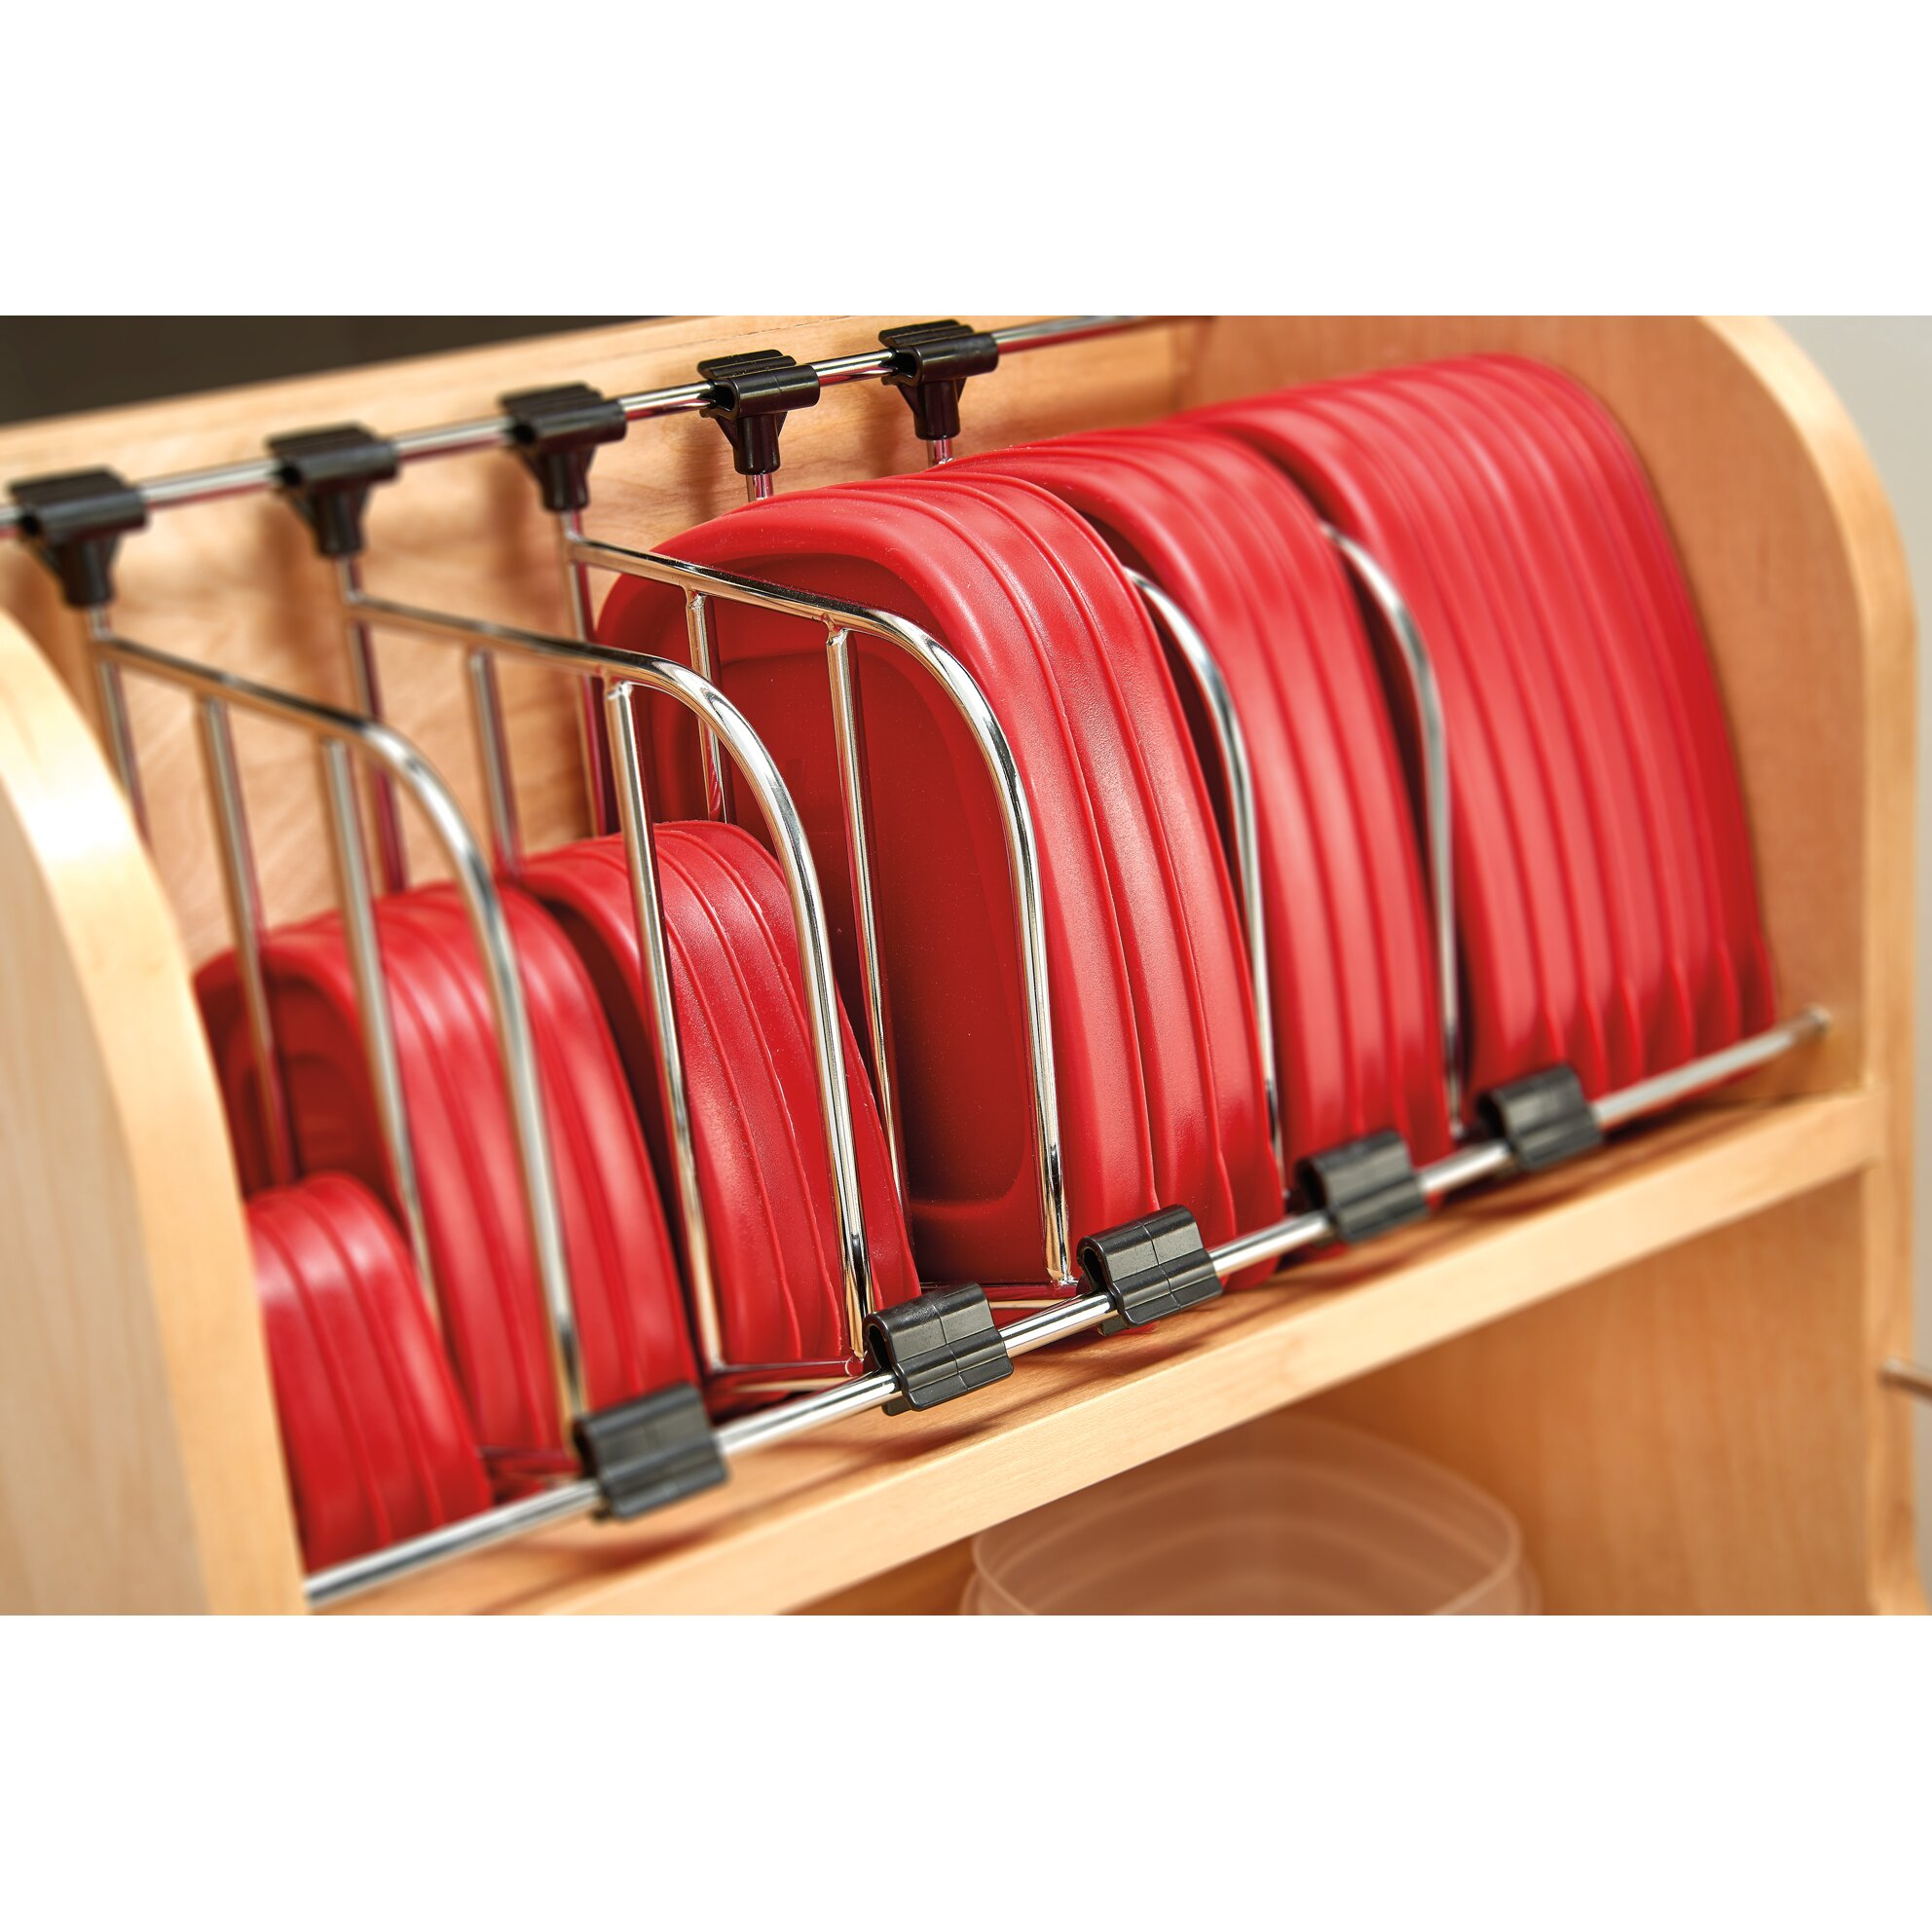 Food Cabinet Storage: Rev-A-Shelf Food Storage Pull Out Drawer & Reviews